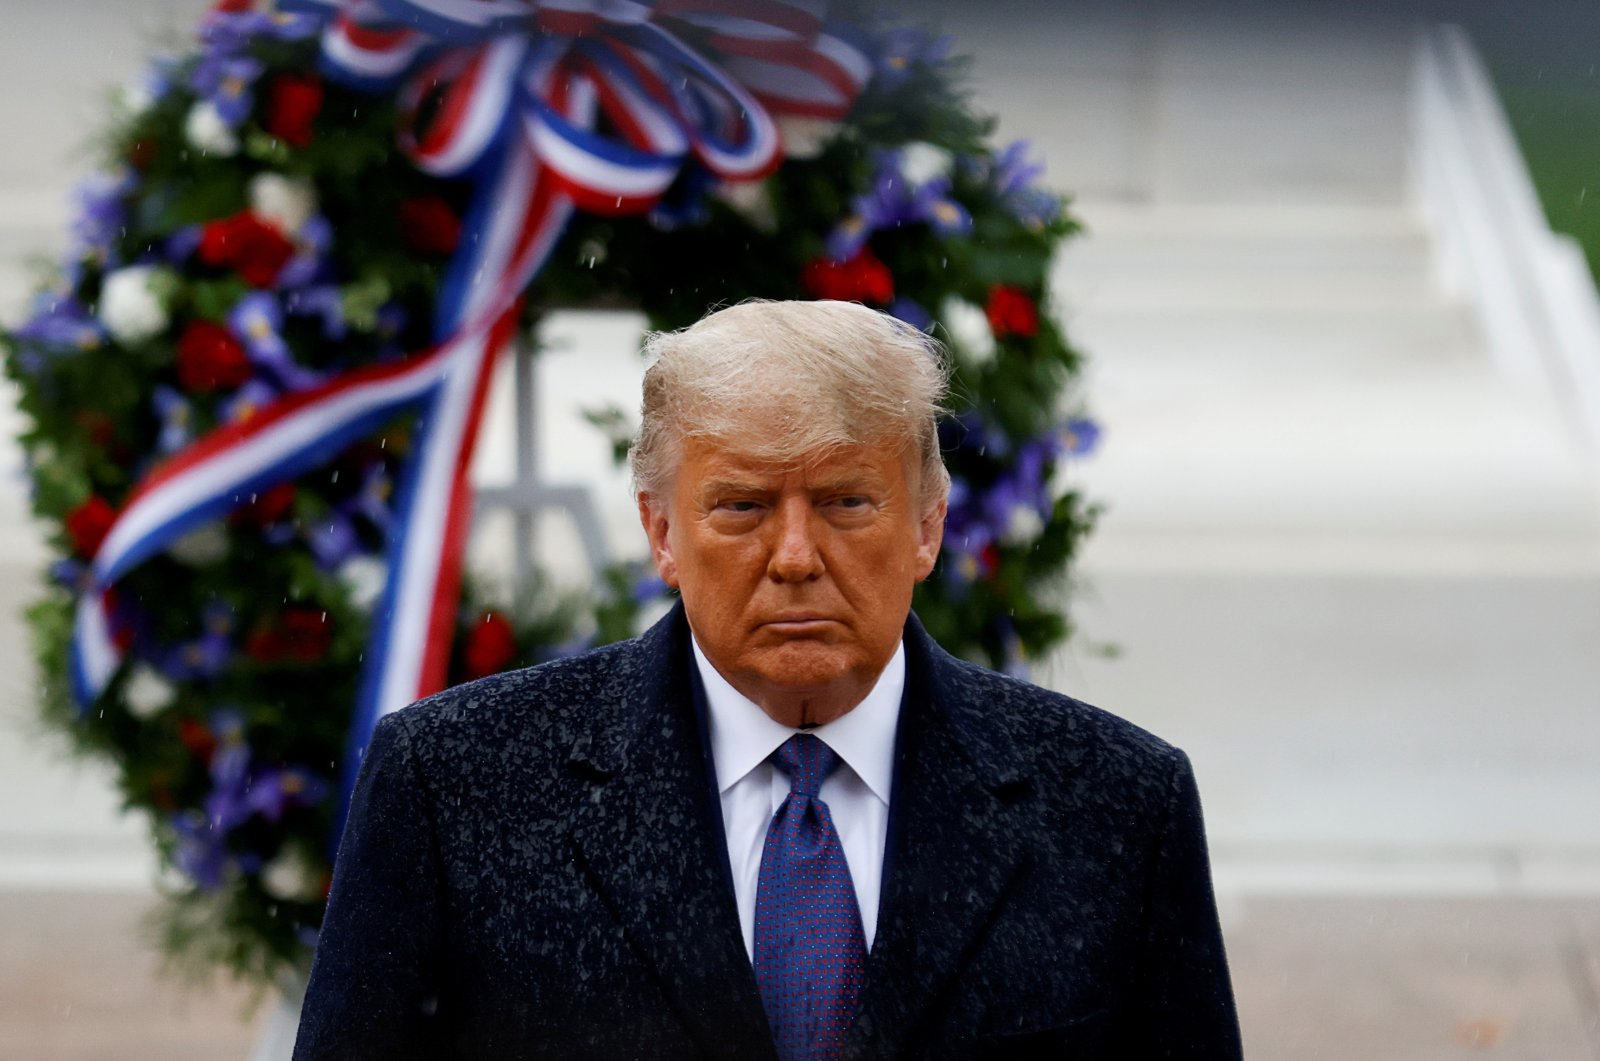 U.S. President Donald Trump turns after placing a wreath at the Tomb of the Unknown Soldier as he attends a Veterans Day observance in the rain at Arlington National Cemetery in Arlington, Virginia, U.S., Nov. 11, 2020. (Reuters Photo)